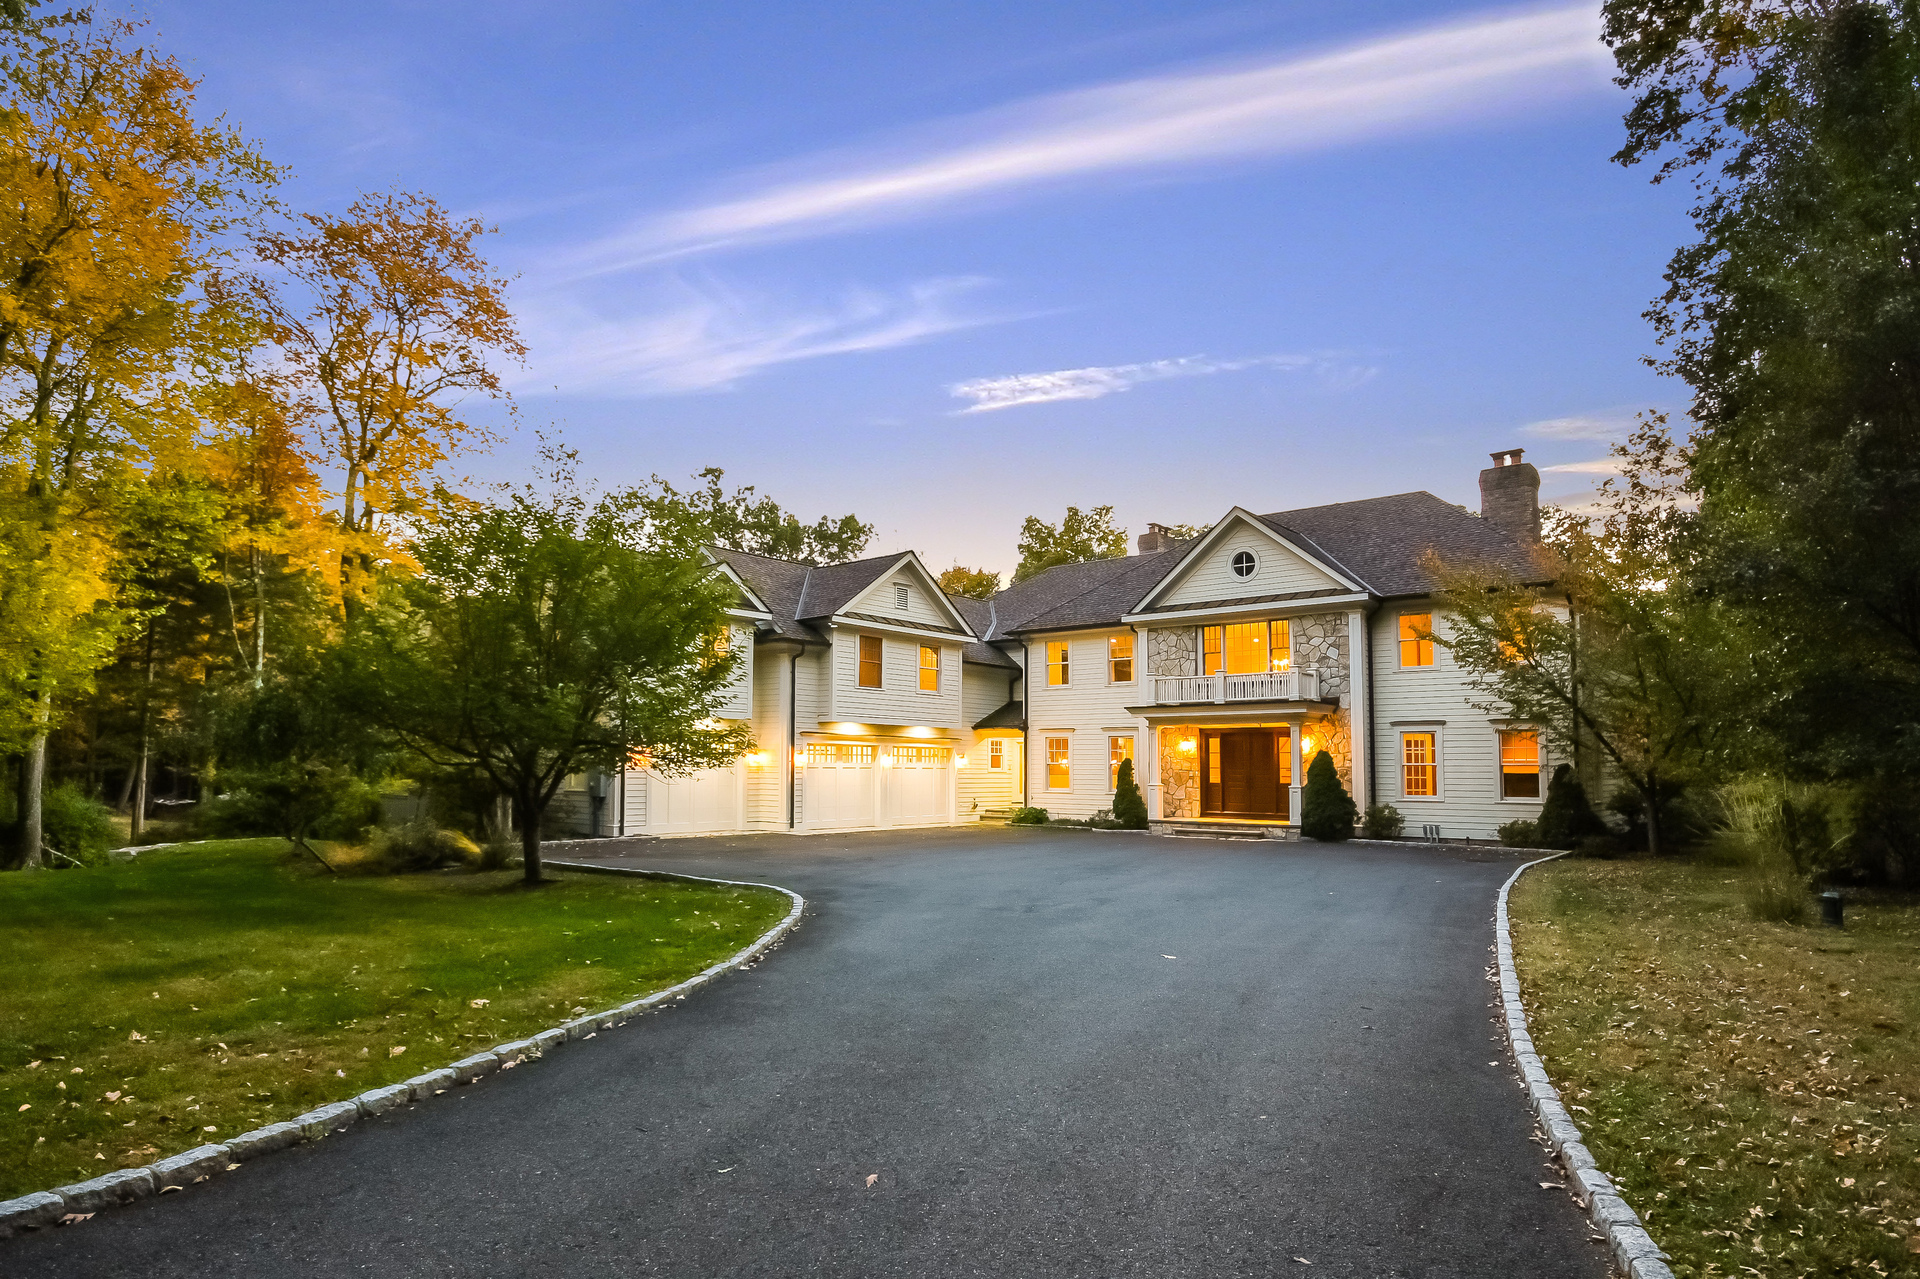 Single Family Home for Sale at Unprecedented Value 21 Richmond Hill Road Weston, Connecticut 06883 United States